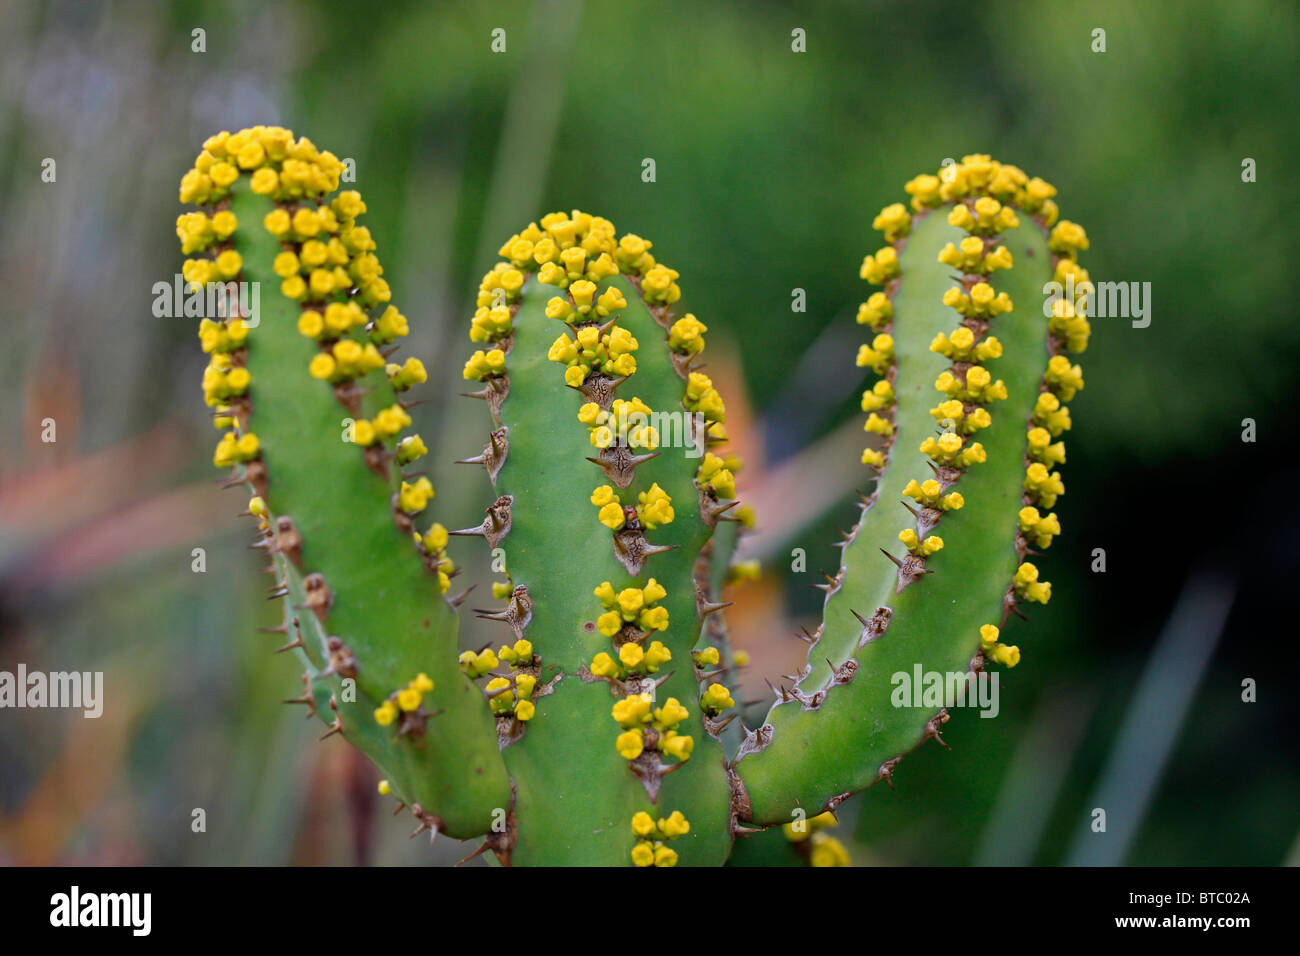 Poisonous cactus stock photos poisonous cactus stock images alamy yellow flowers of euphorbia lendienii cactus in kirstenbosch national botanical gardens cape town south mightylinksfo Images